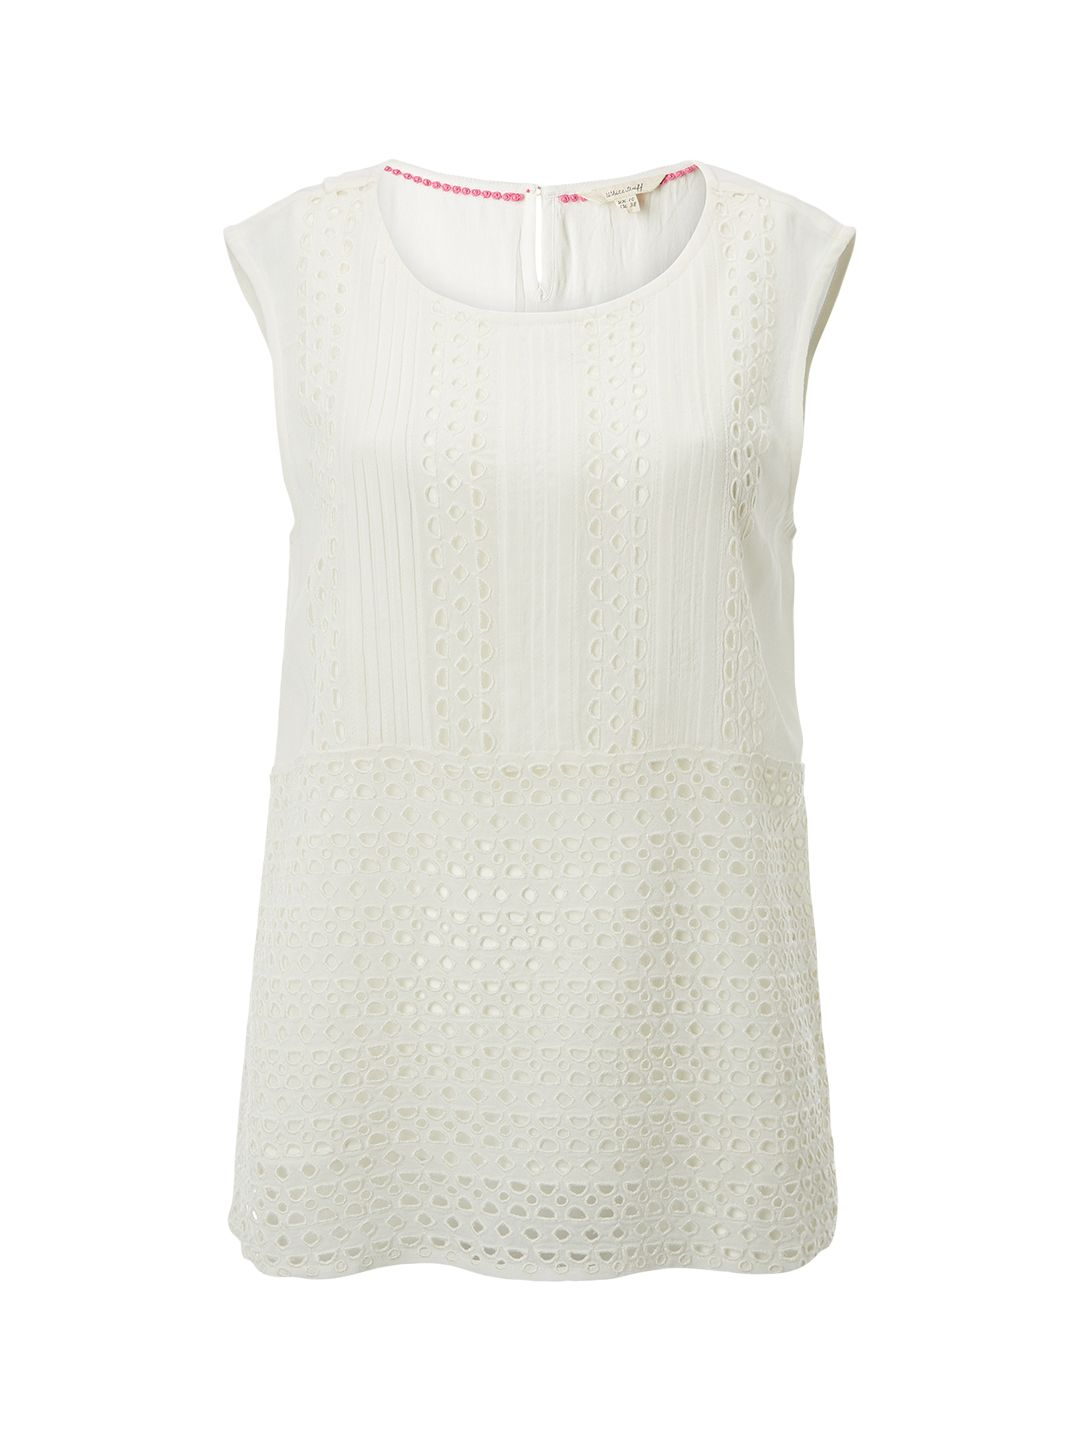 White Stuff Esme Cutwork Vest, Cream